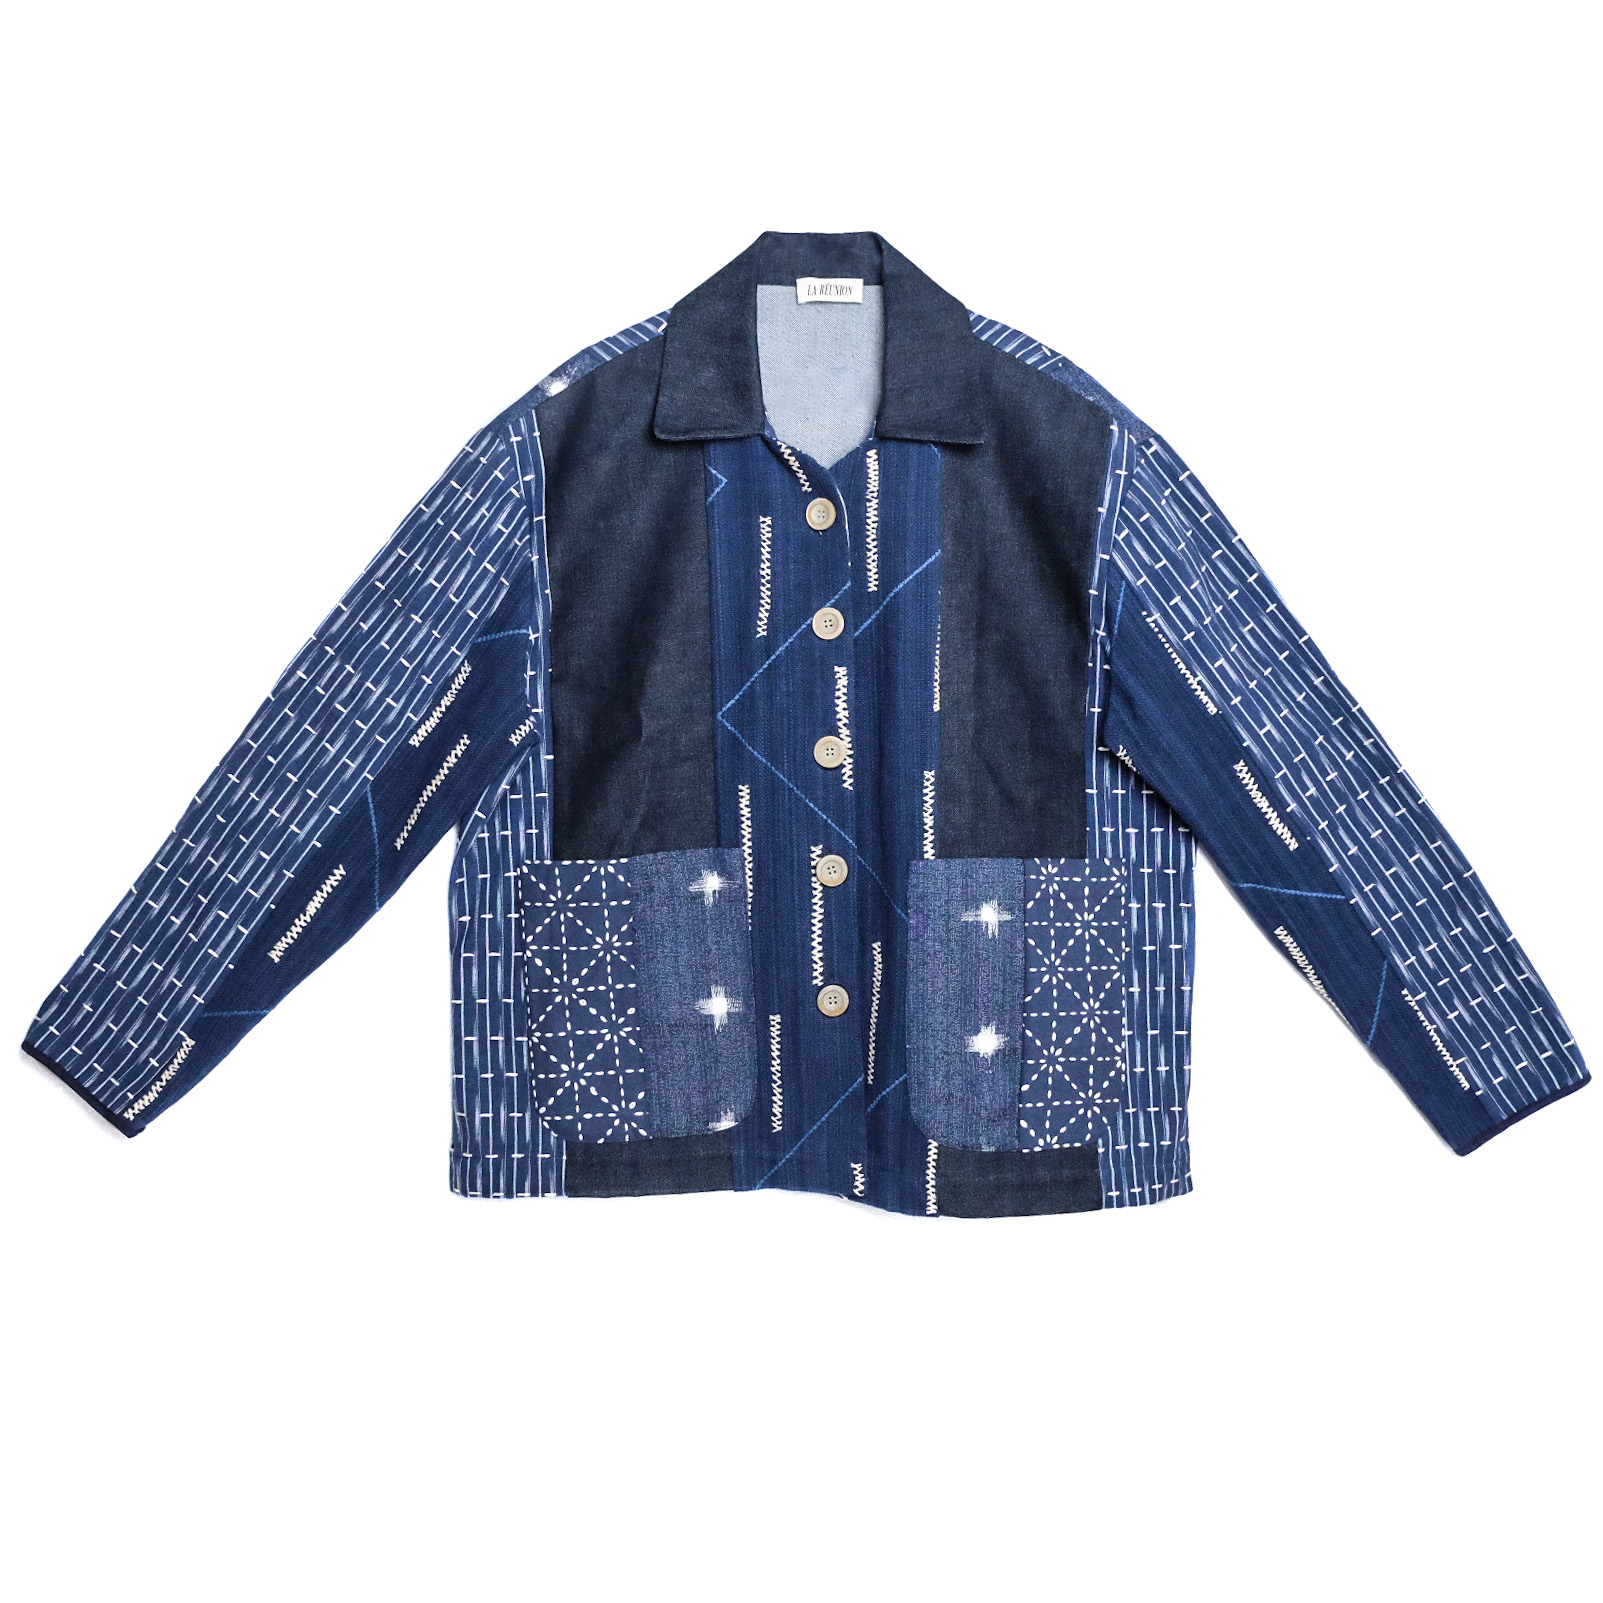 an image of an all blue patchworked jacket